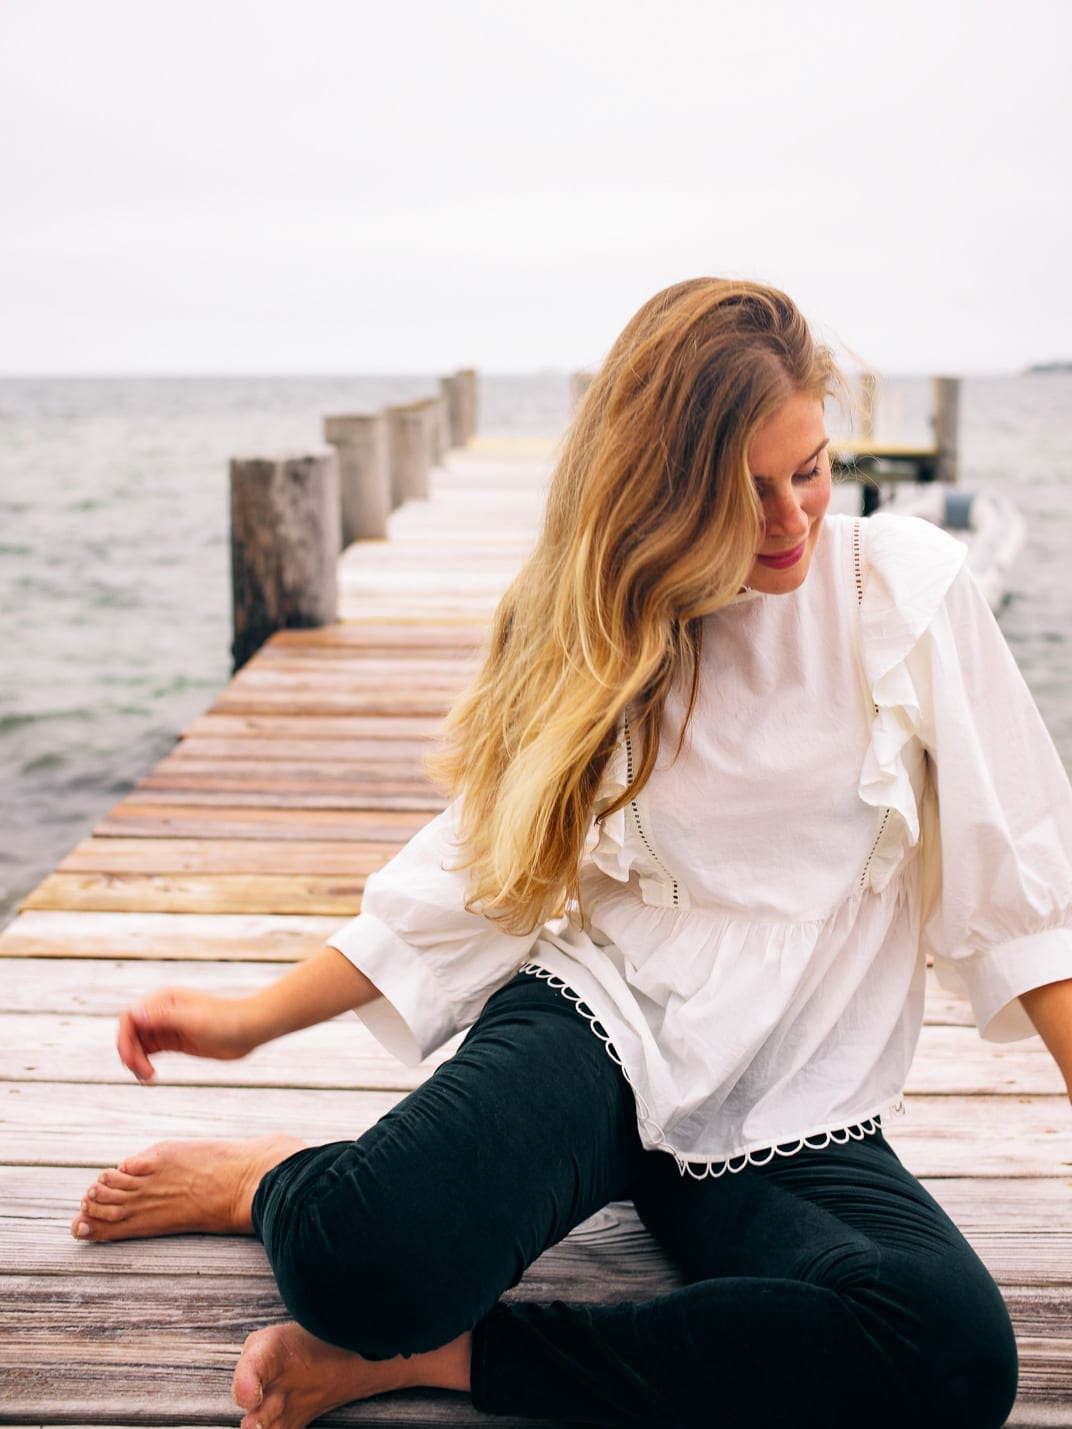 Perfect Velvet Trousers for Fall - Relaxing On My Favorite Dock